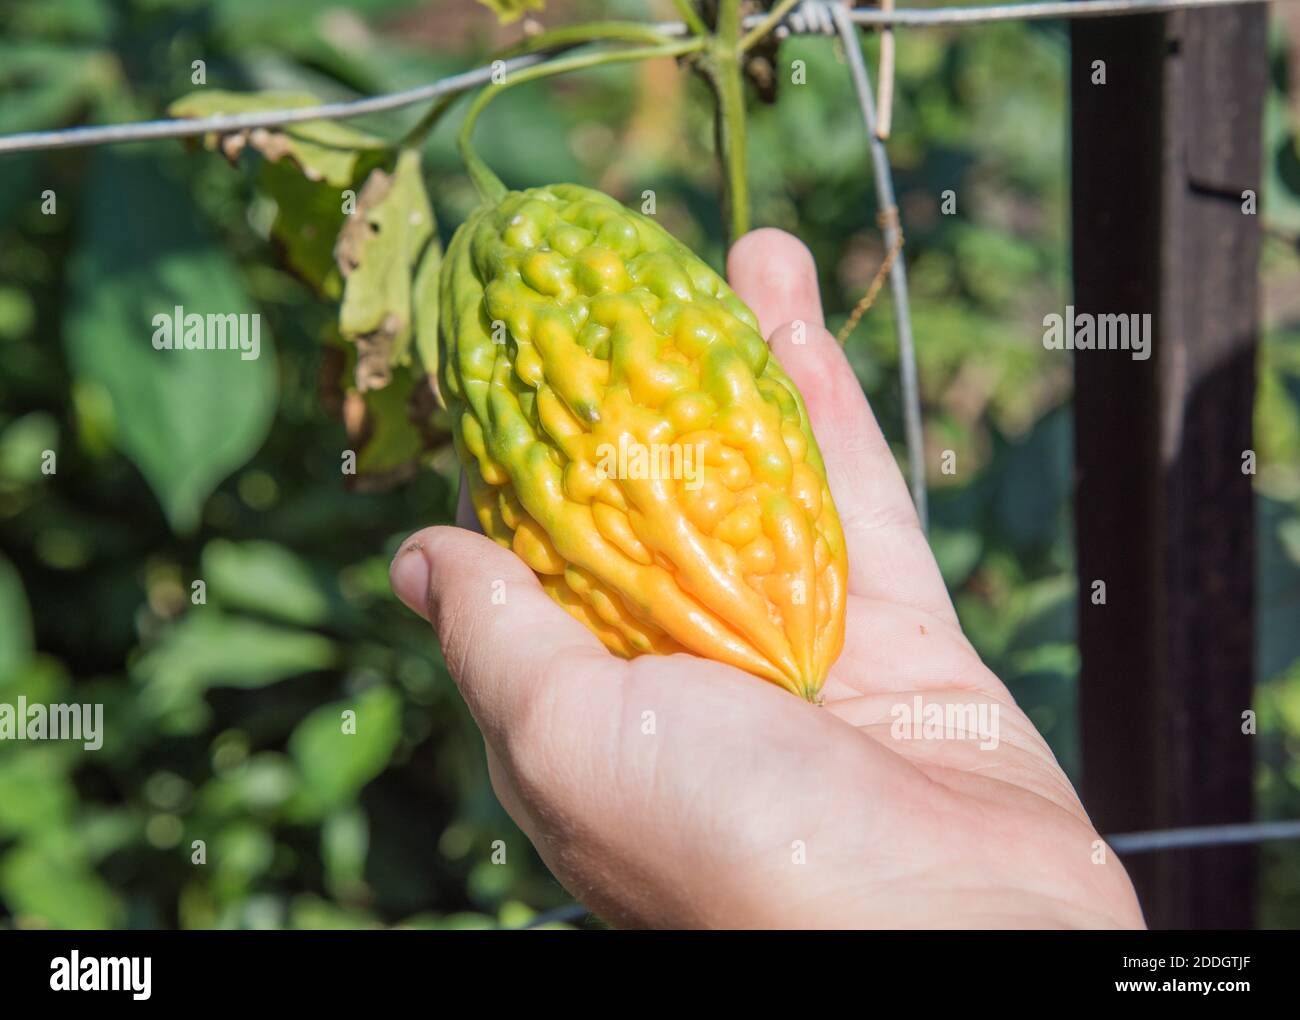 Close Up Of Bumpy Yellow And Green Squash Hanging On Garden Vine In Darwin Australia Stock Photo Alamy